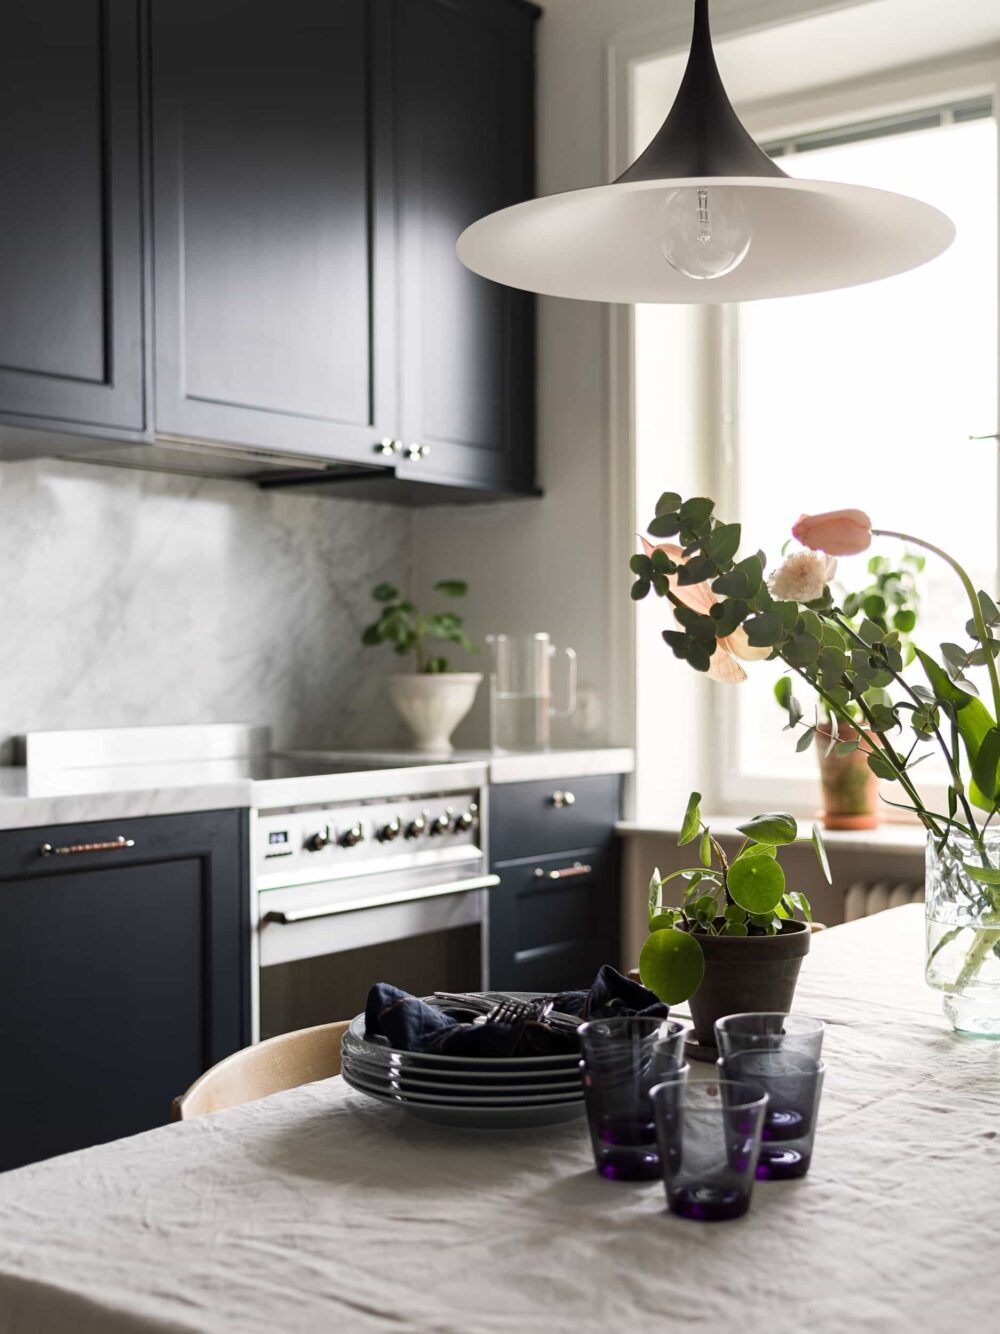 Designing Your Dream Kitchen? 5 Things You Need To Know